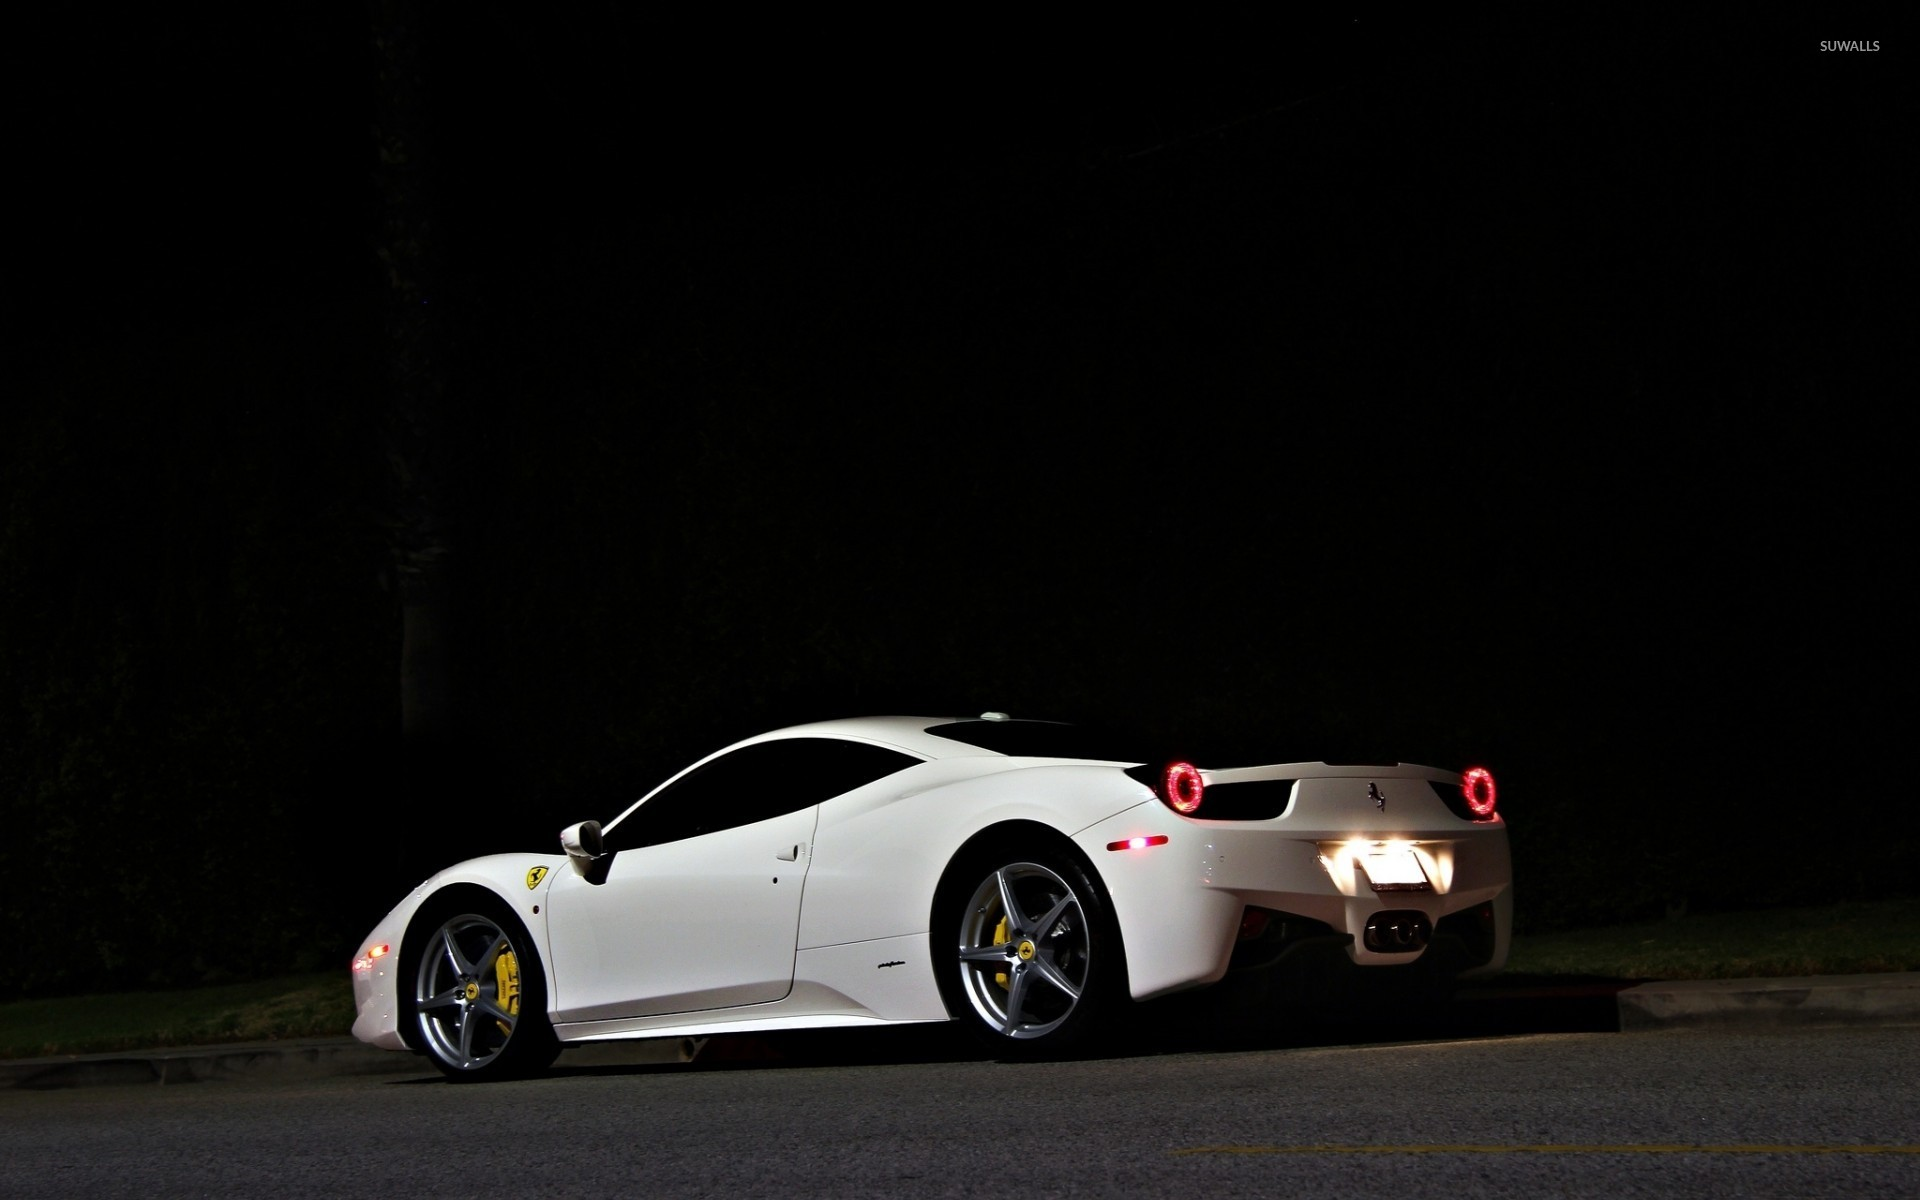 Simple Wallpaper Night Ferrari - white-ferrari-458-italia-back-side-view-at-night-51849-1920x1200  You Should Have-898062.jpg